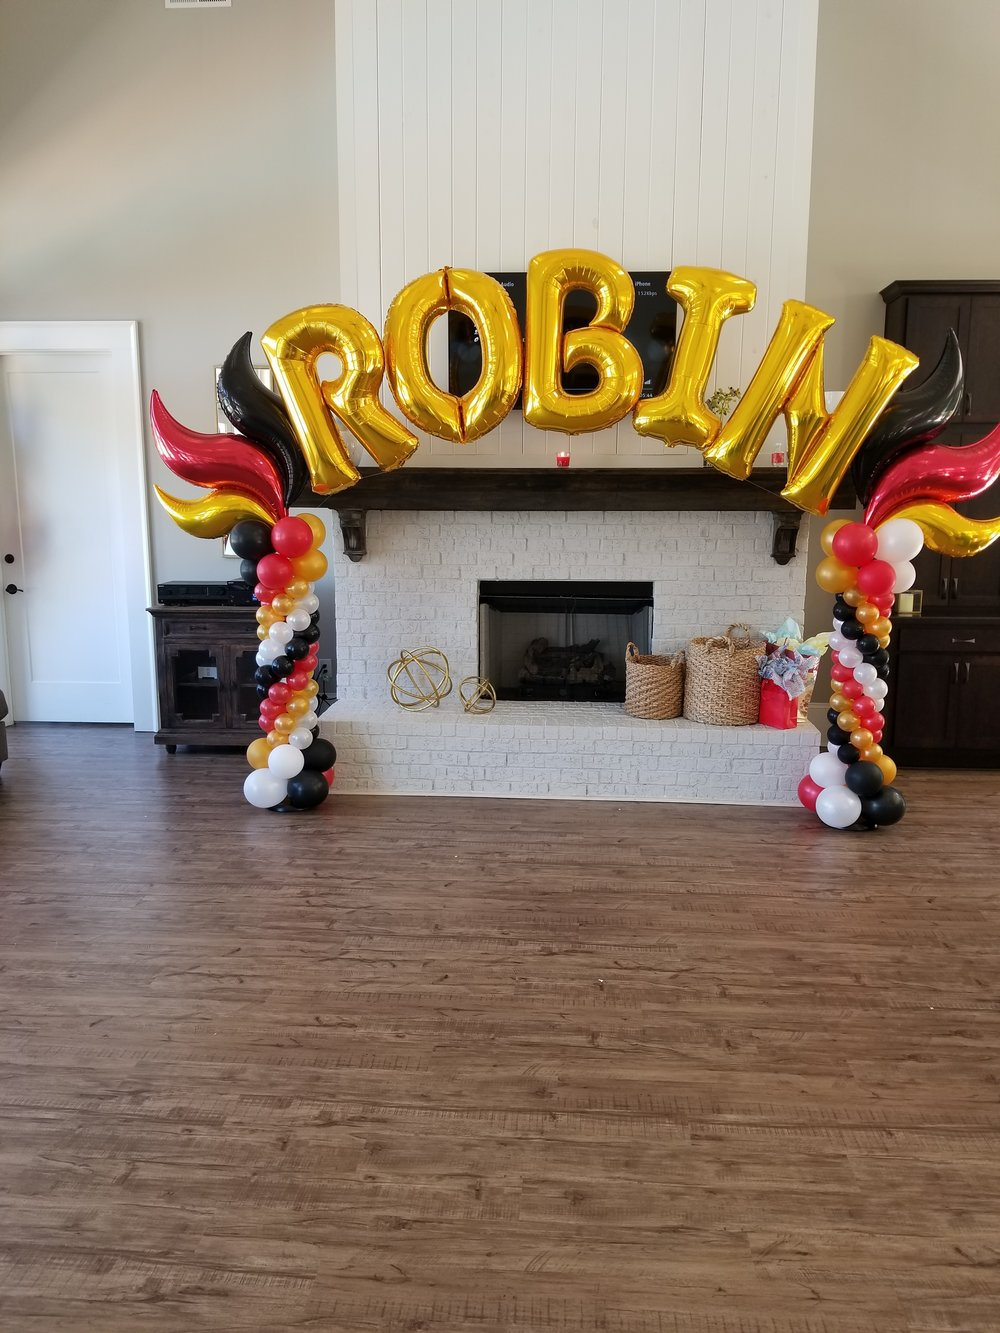 Letter balloon arch with columns.jpg